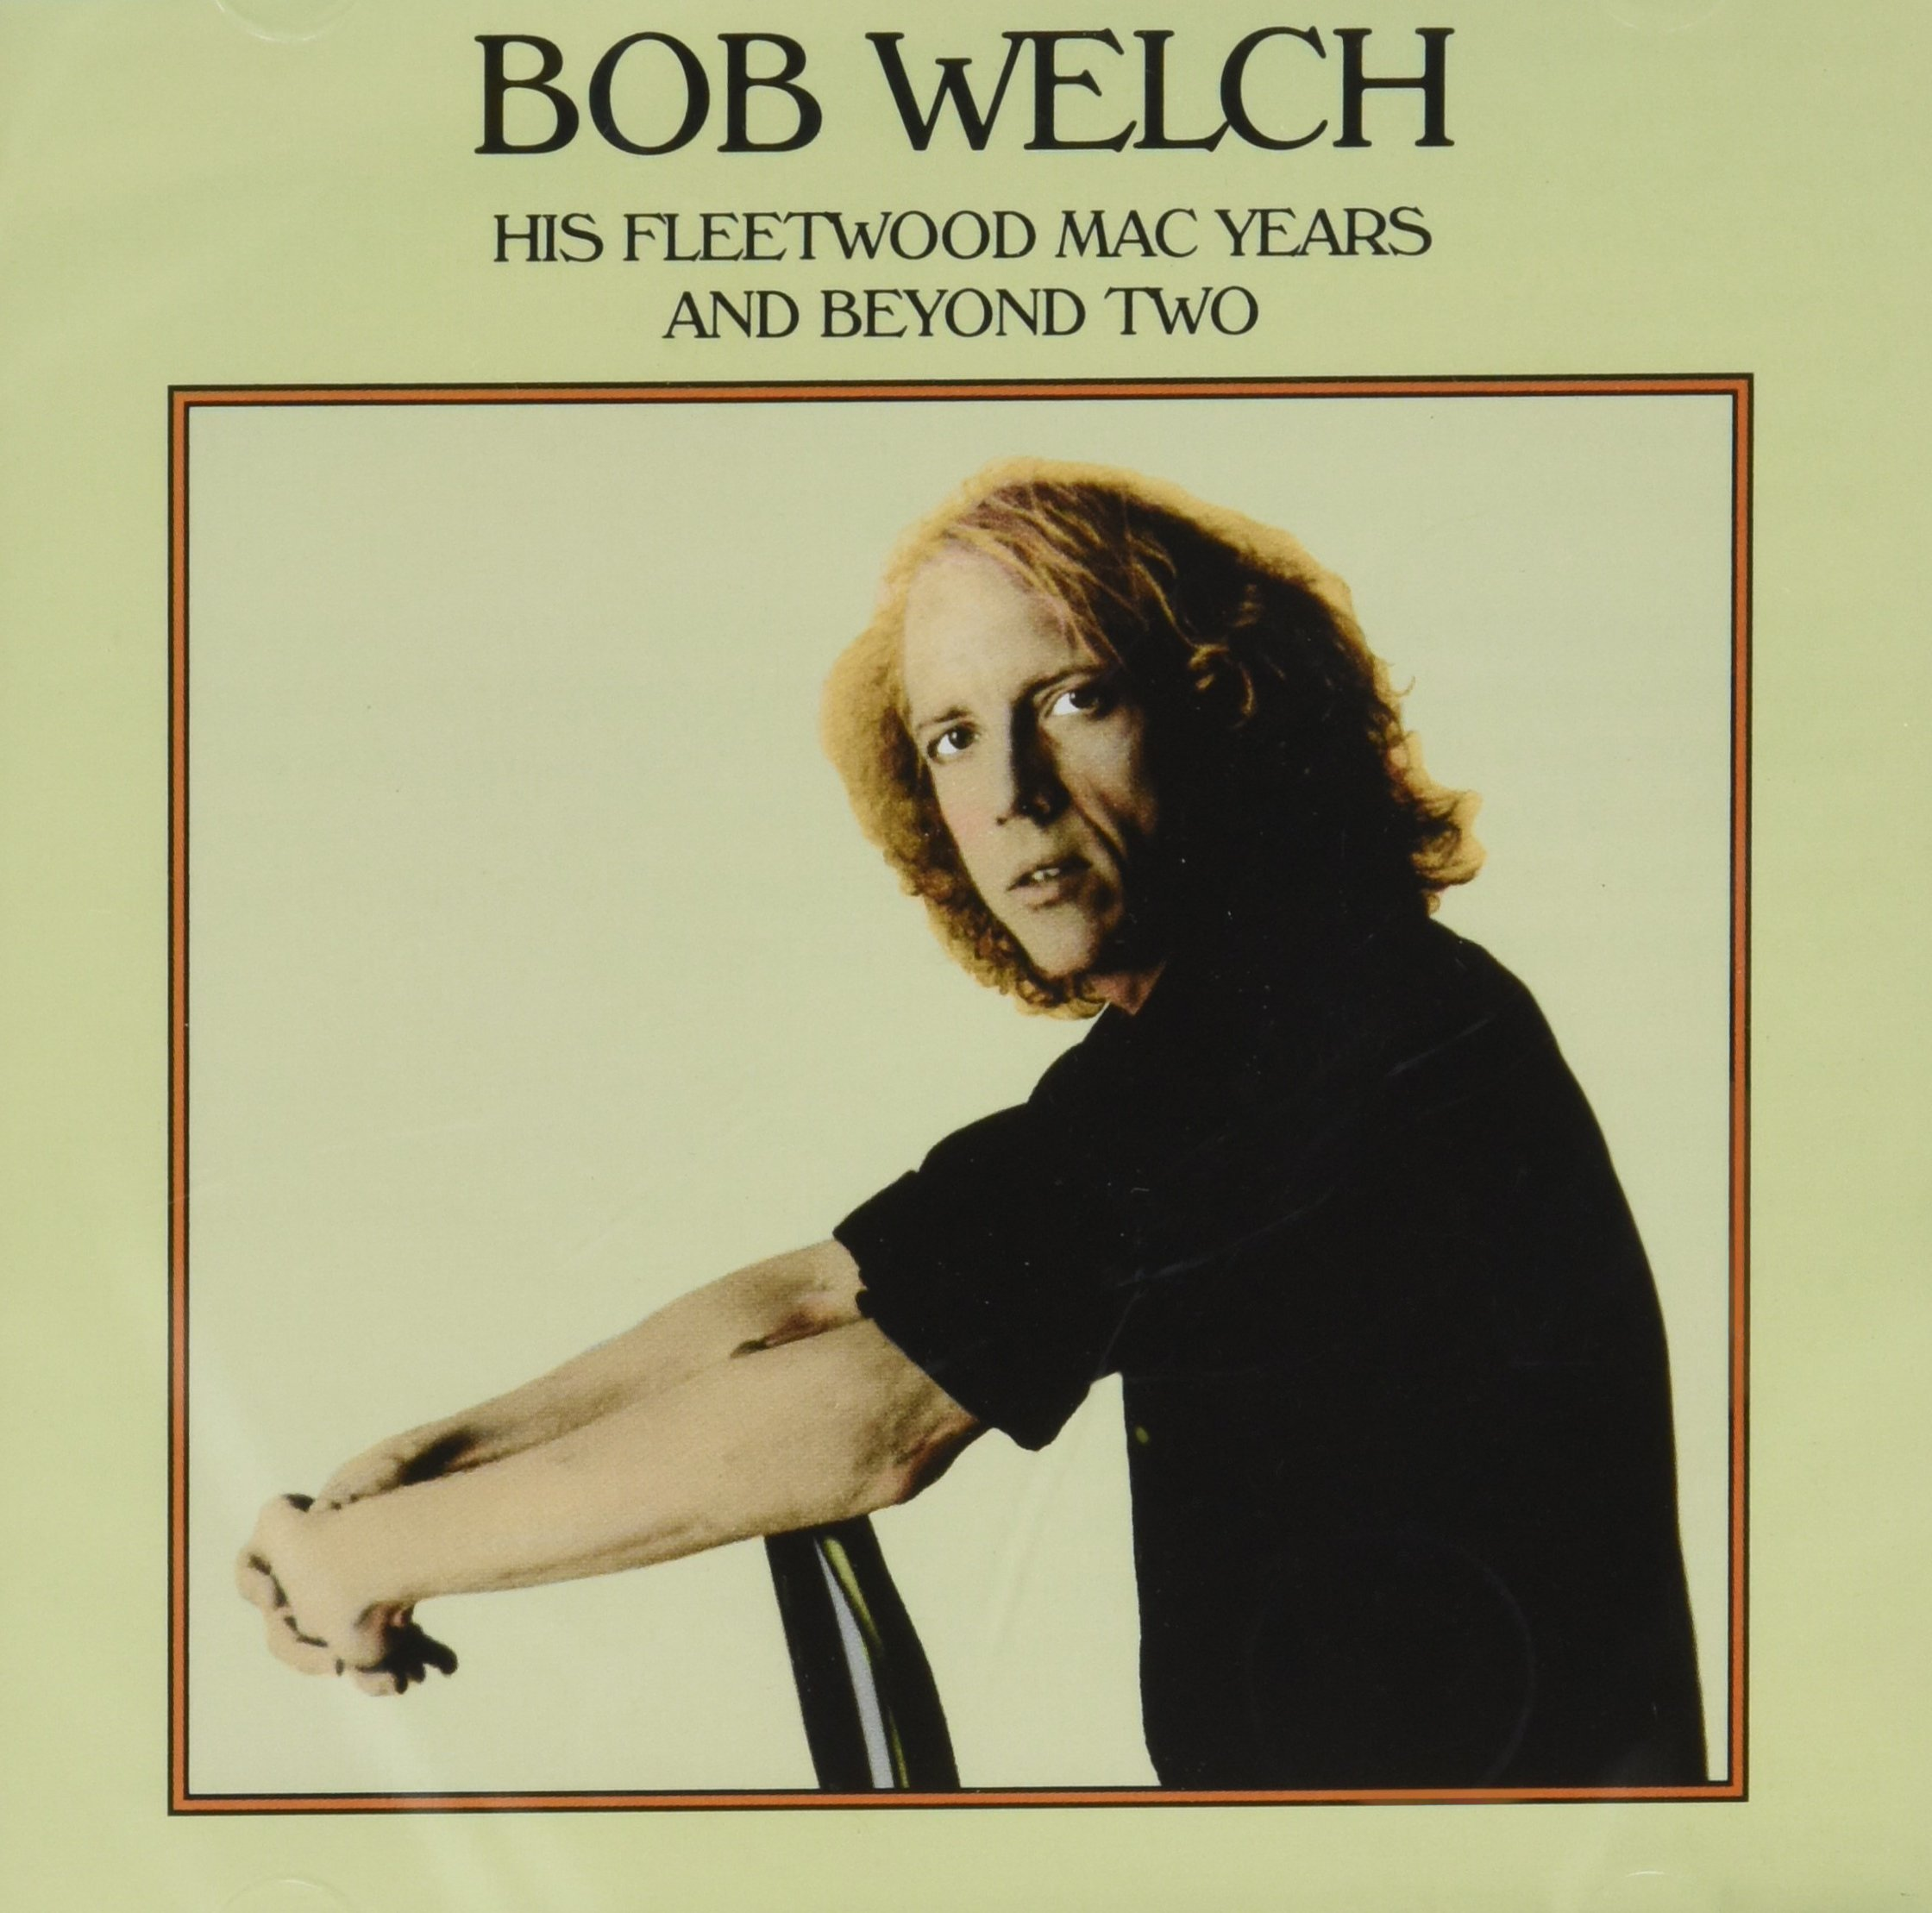 CD : Bob Welch - His Fleetwood Mac Years And Beyond Two (Expanded Version)